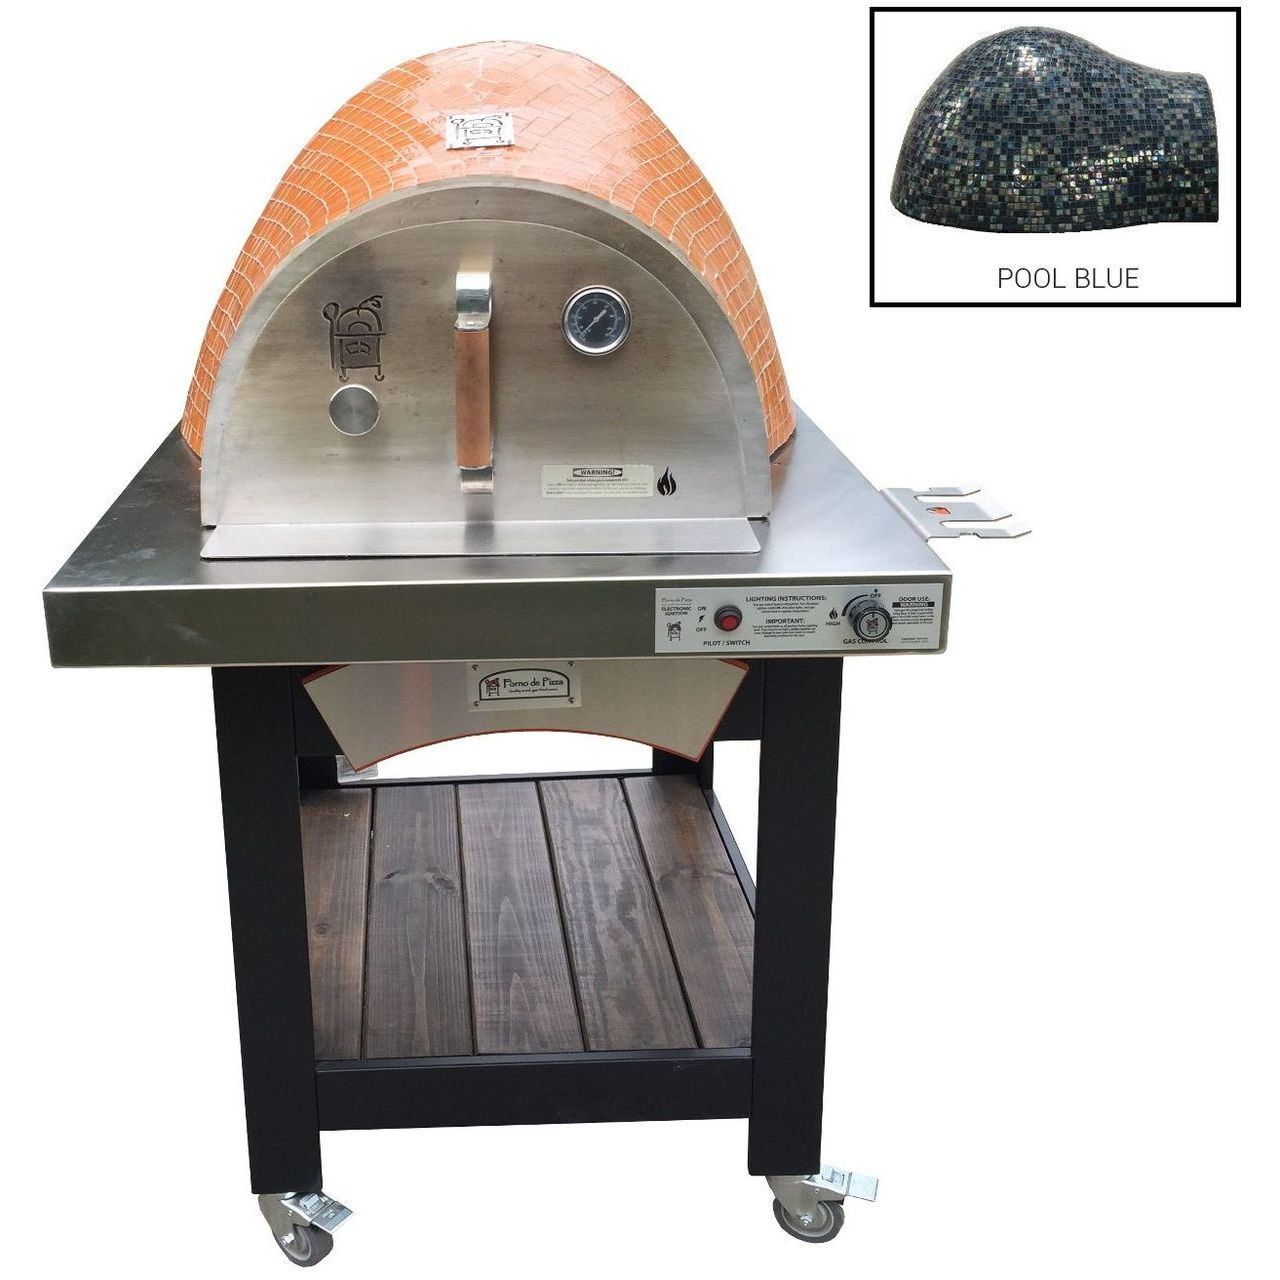 HPC Forno Hybrid Gas/Wood Oven With EI & Cart in Pool Blue - NG